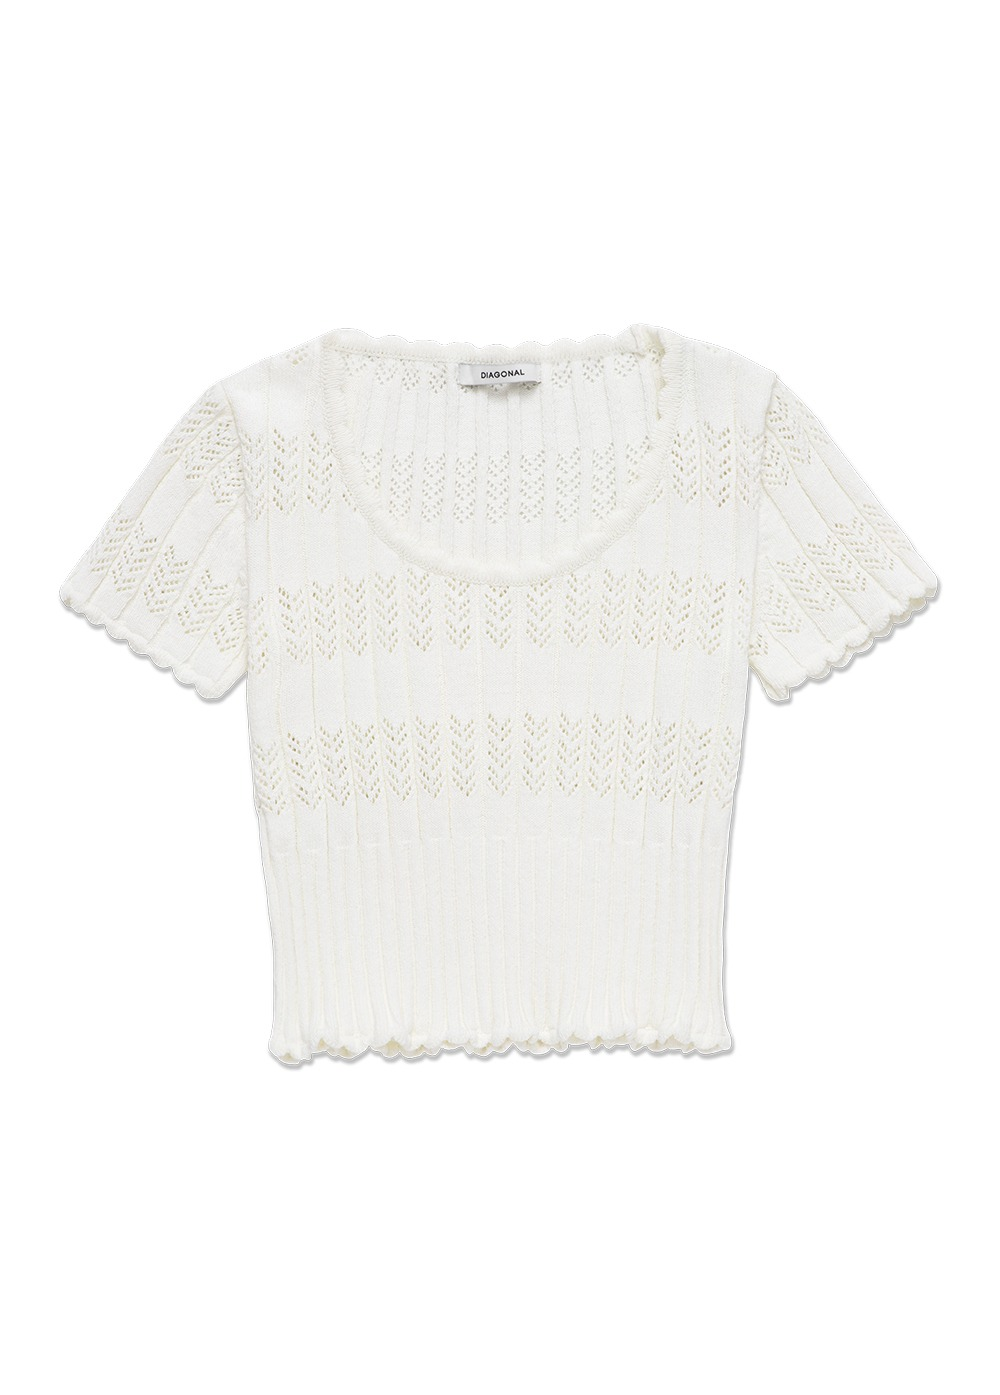 MARITHE X DIAGONAL SCALLOP KNIT TOP white